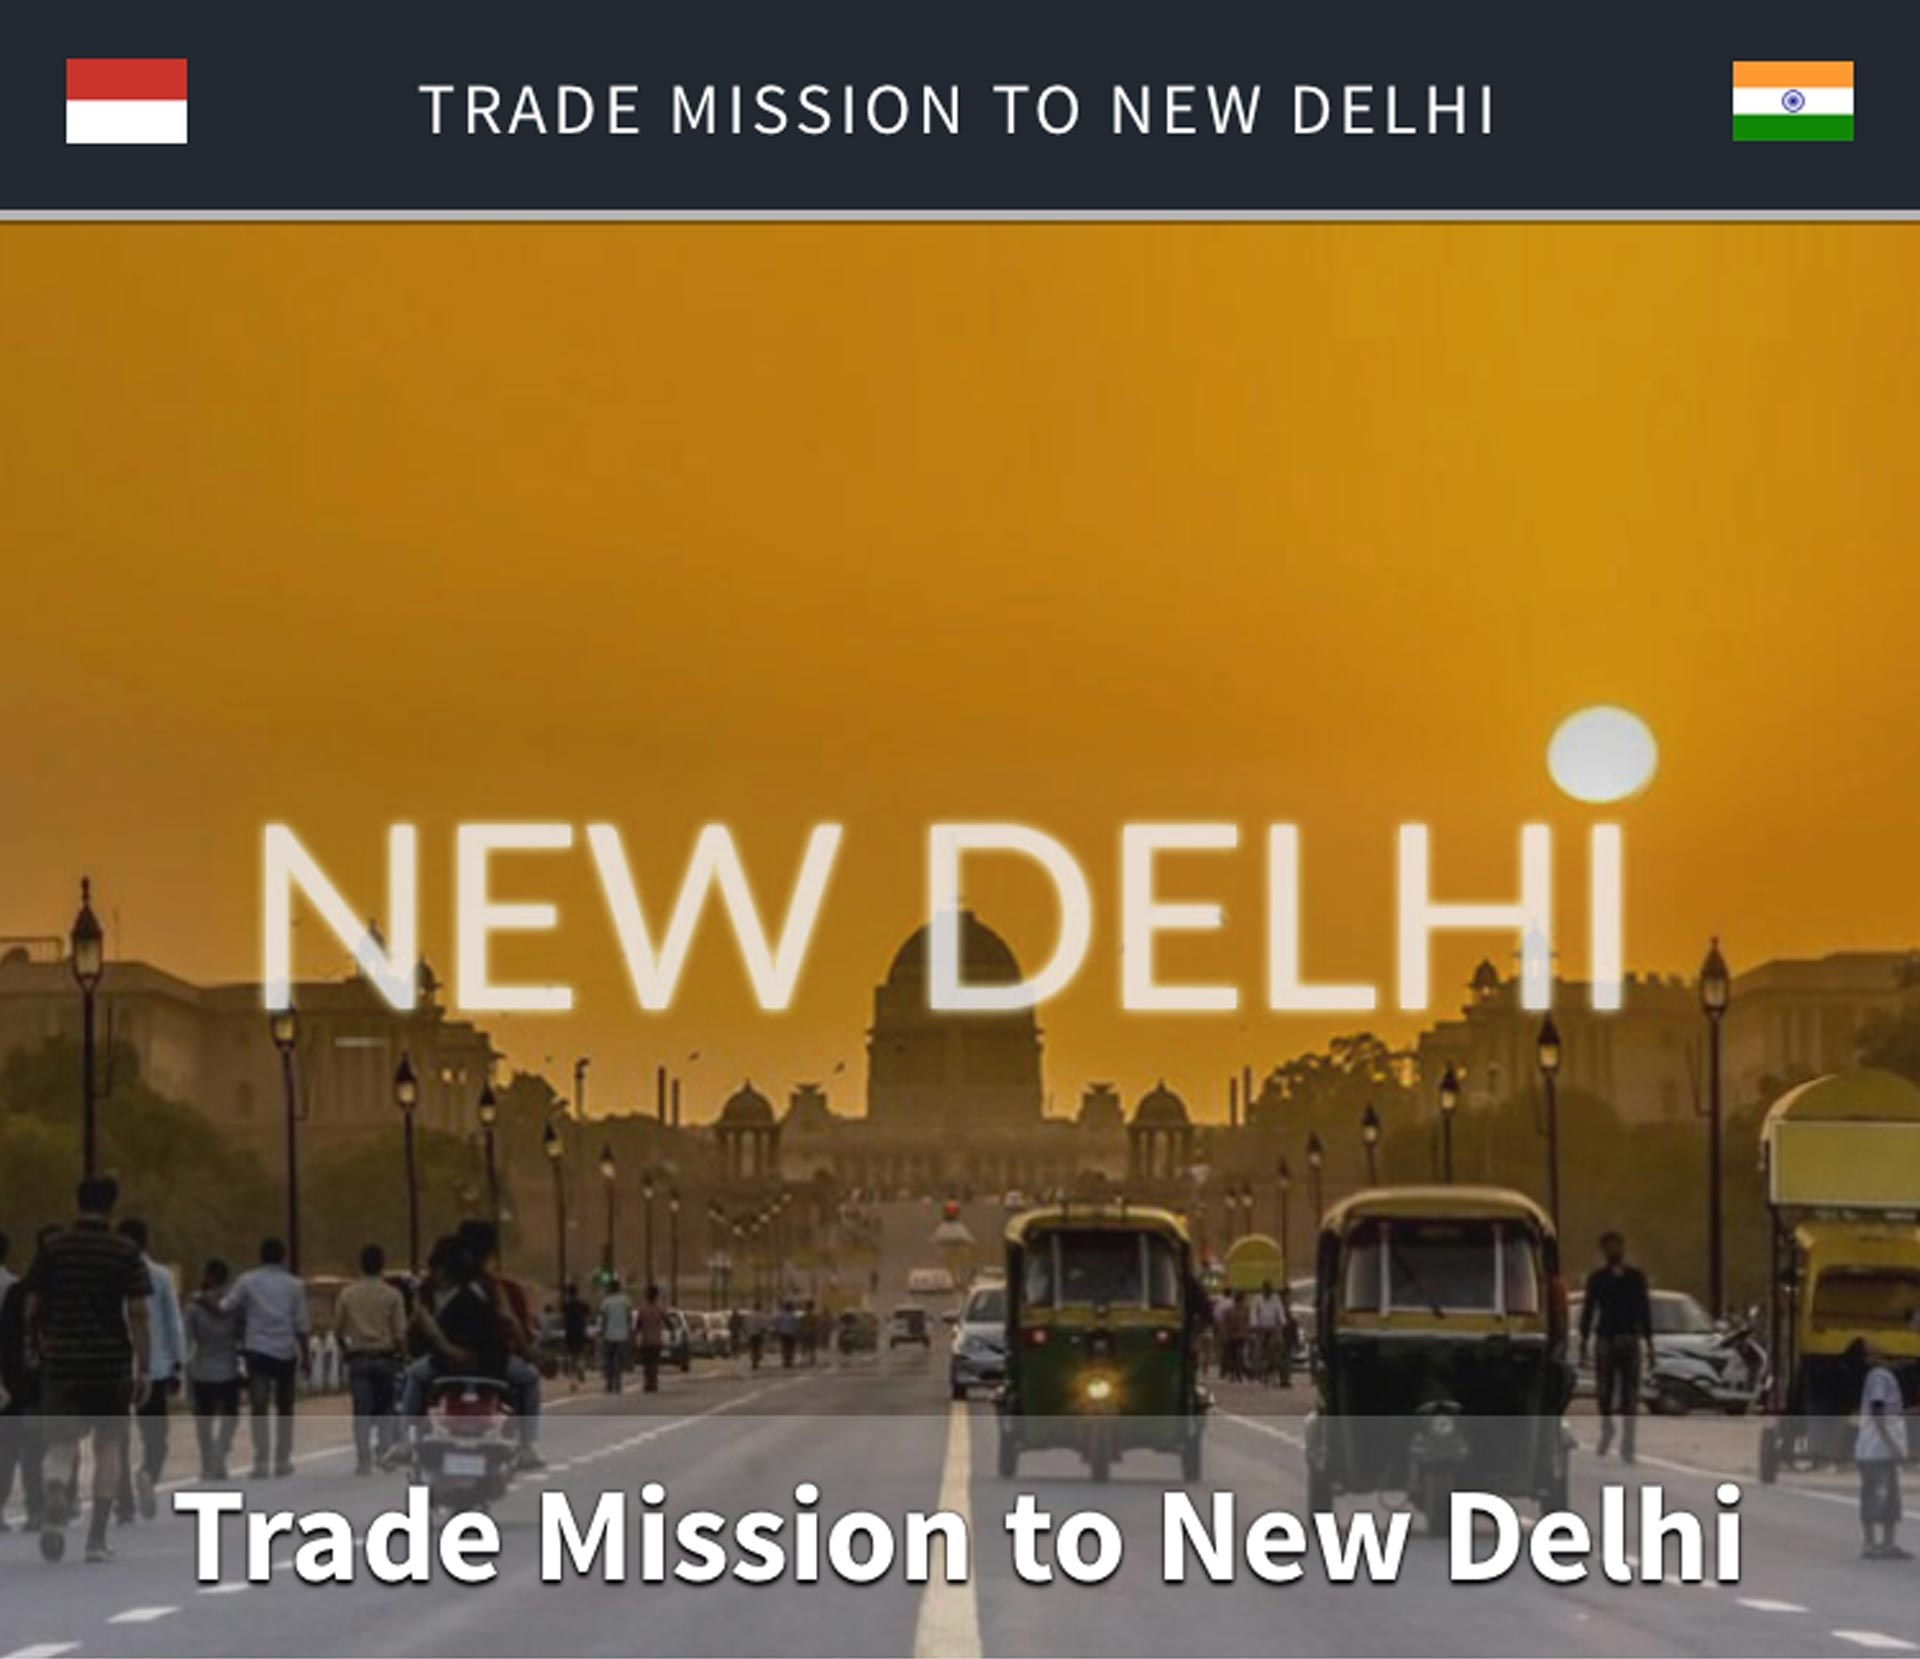 Monaco-India-New-Delhi-Trade-Mission-MEB-FICCI-IFCCI-Christopher-Nathalie-Caroline-Mindus-iizi-cut.jpg